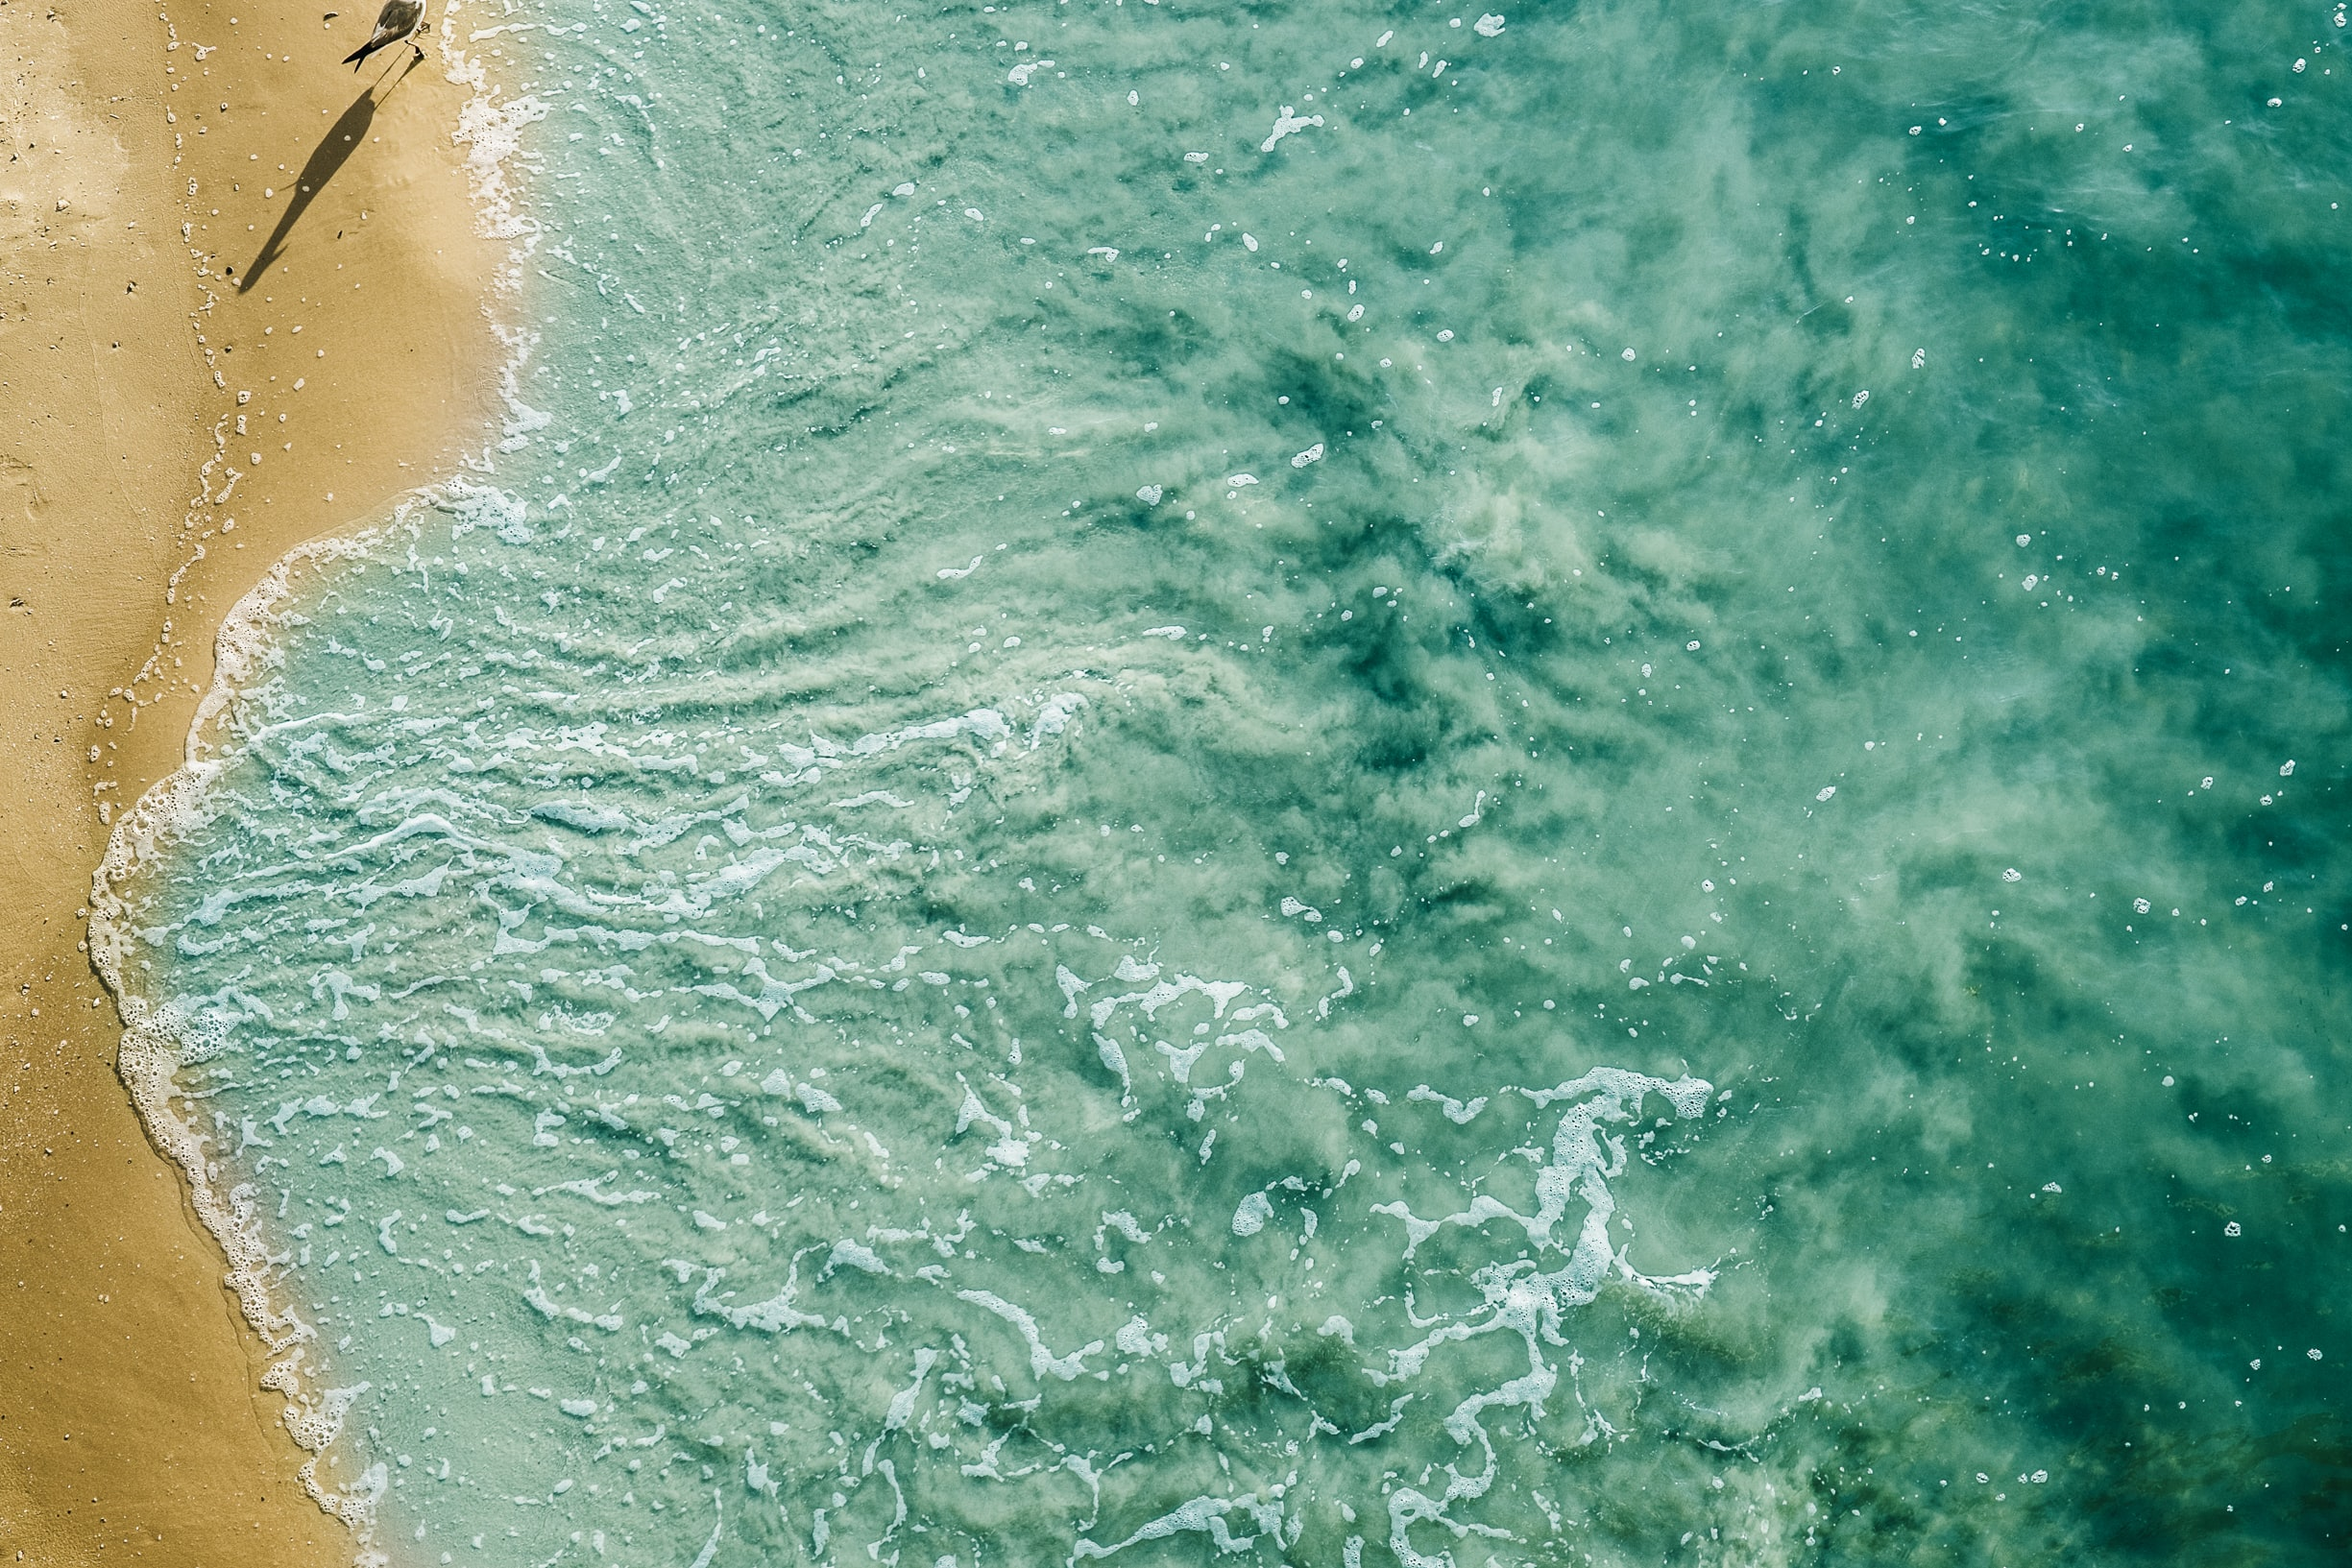 Drone view of ocean washing on the beach sand shore